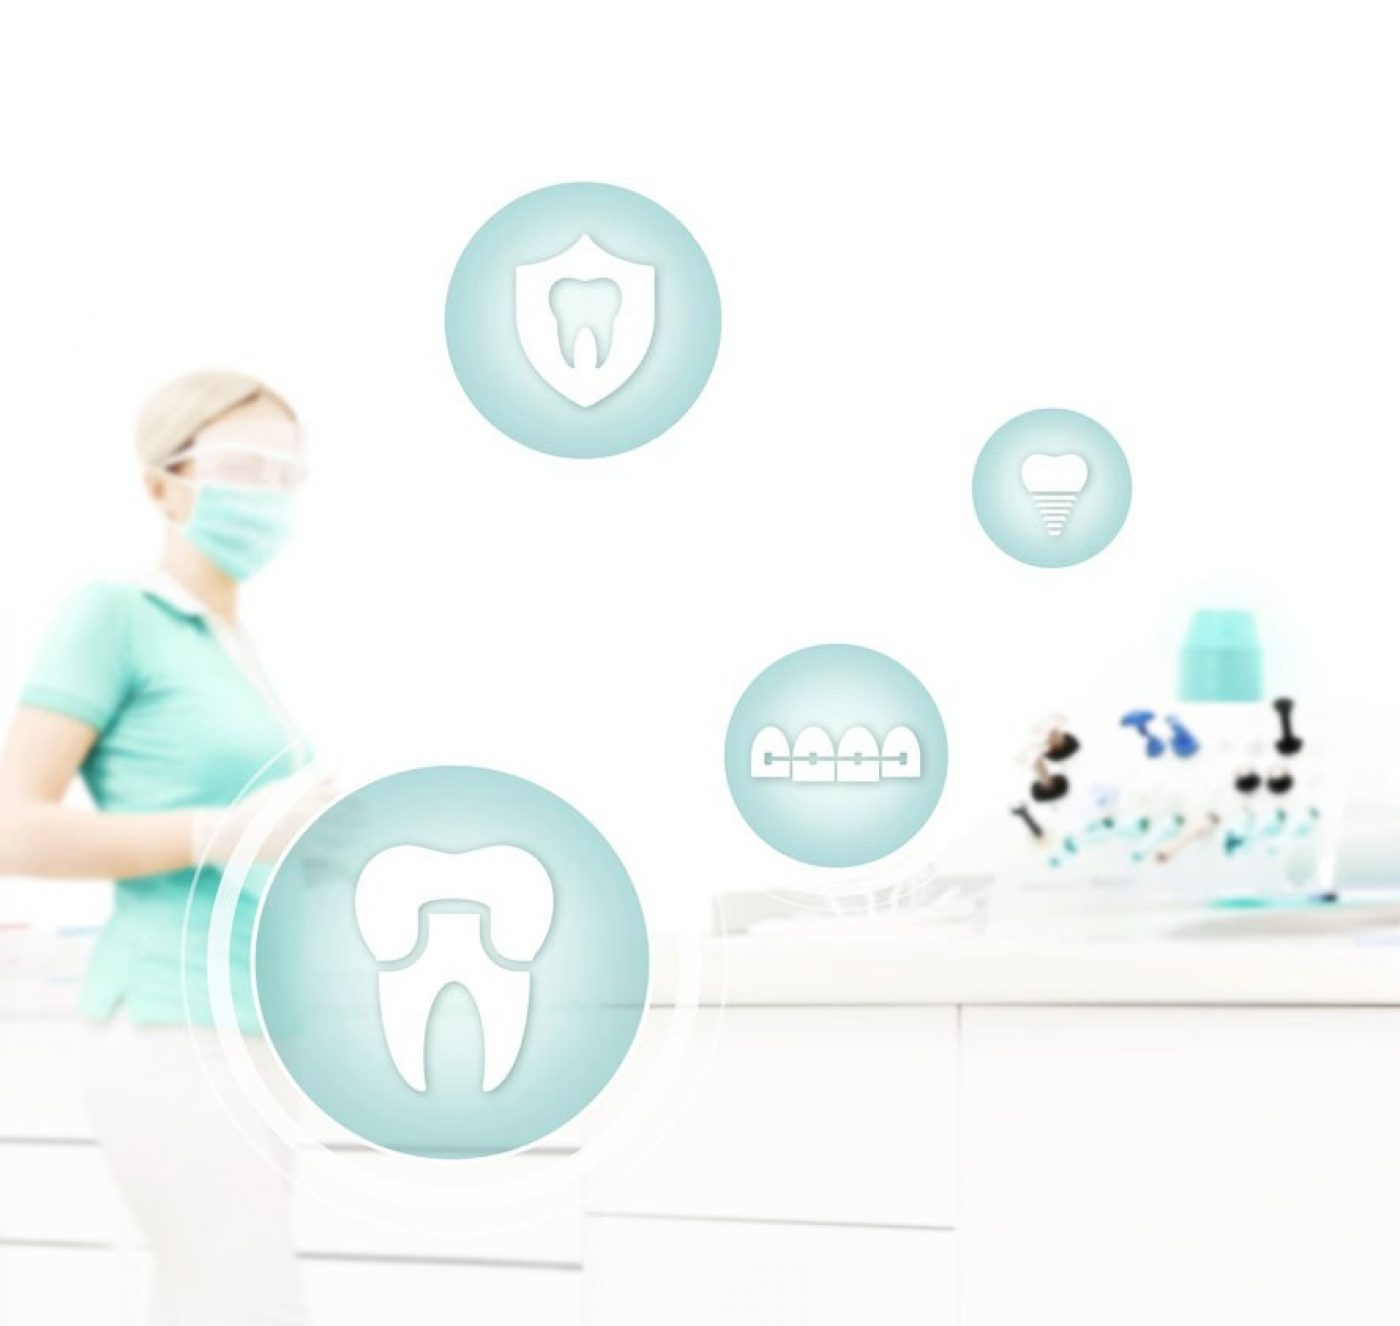 Edgar Orthodontic Centre Advicecare Commondentalconditions